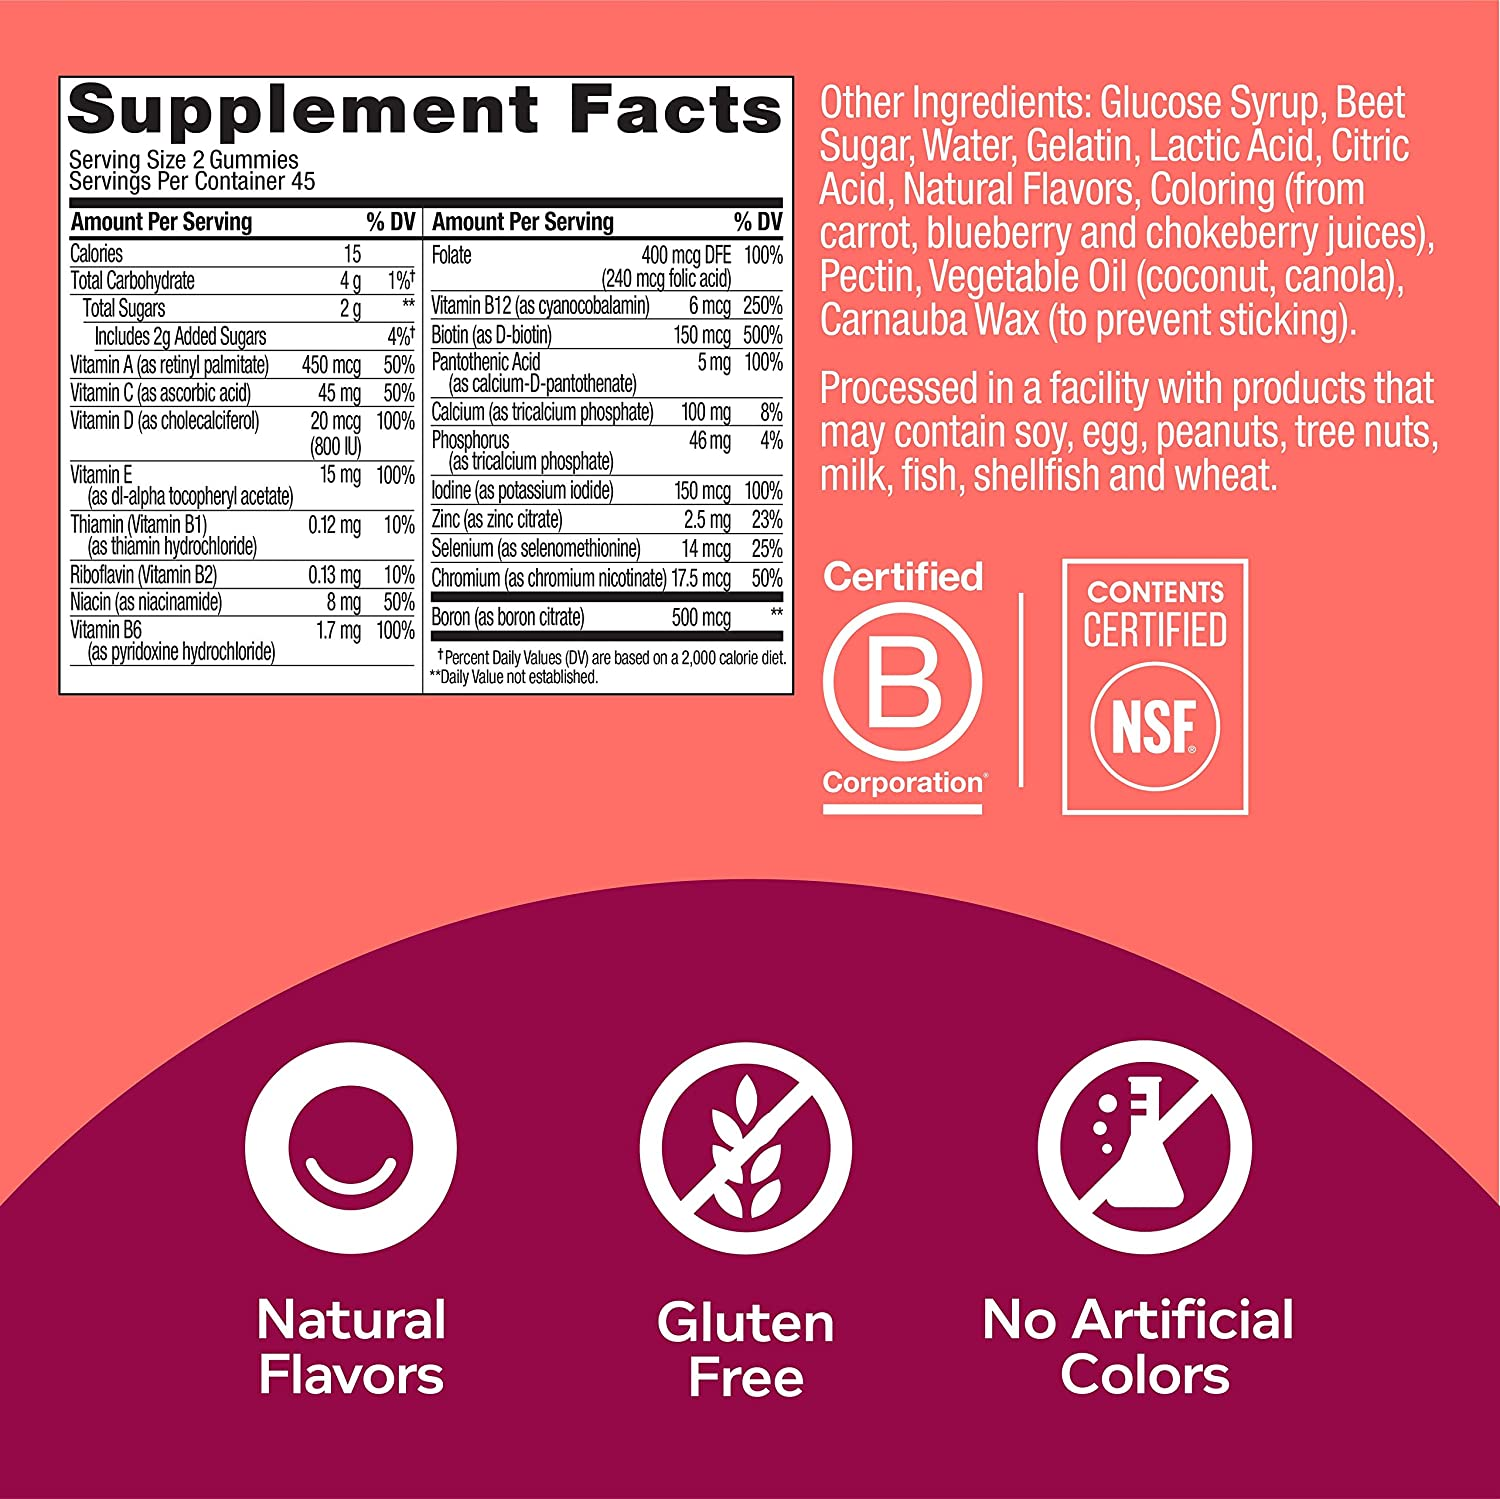 OLLY Women's Multivitamin Gummy, Vitamins A, D, C, E, Biotin, Folic Acid, Chewable Supplement, Berry Flavor, 45 Day Supply - 90 Count (Packaging May Vary) : Health & Personal Care